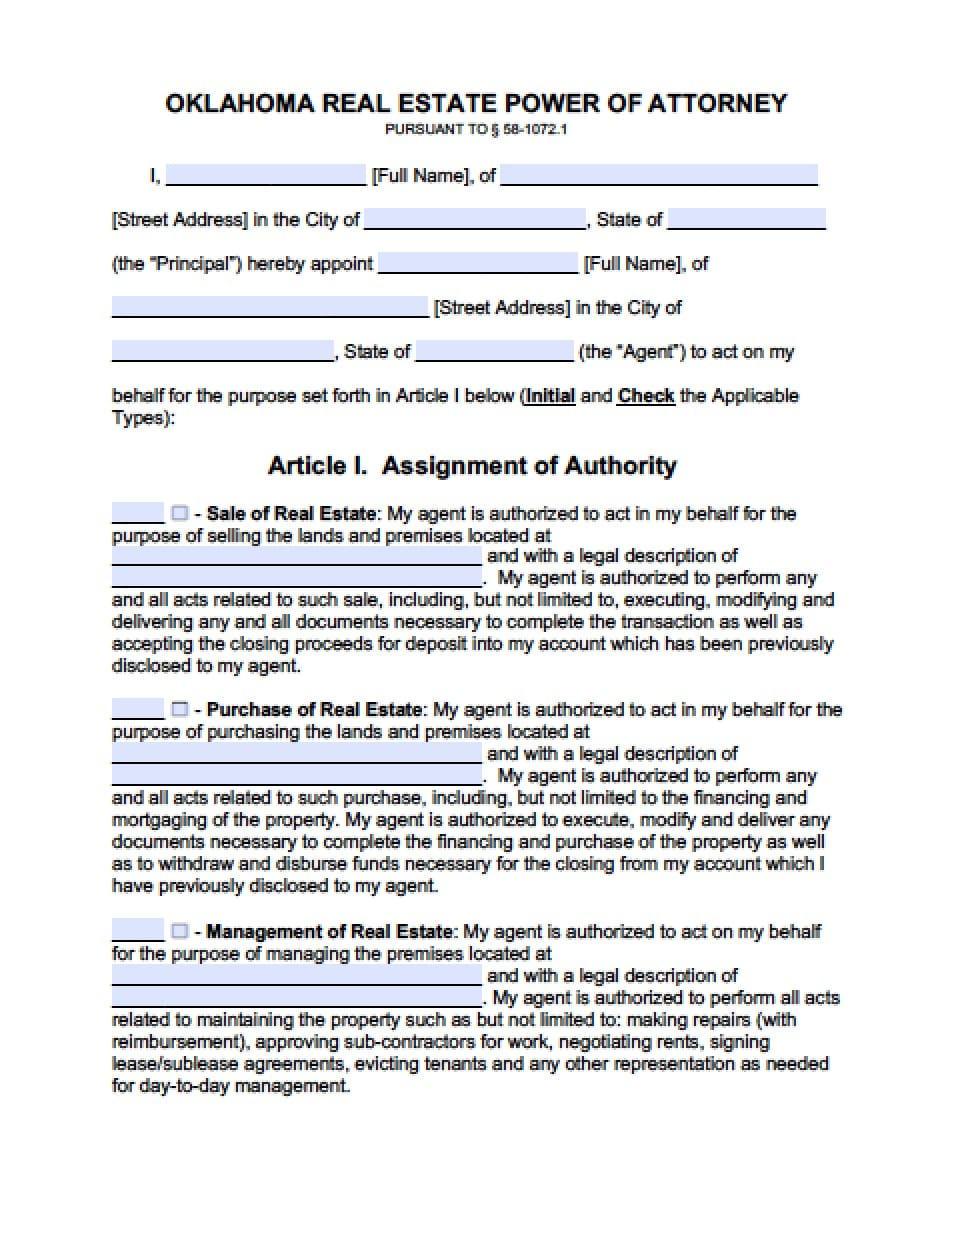 Oklahoma-Real-Estate-ONLY-Power-of-Attorney-Form Oklahoma Durable Power Of Attorney Form Pdf on ohio medical, philippine special, free blank, army general, new york, georgia general, florida statutory specific, alabama general, free printable durable,